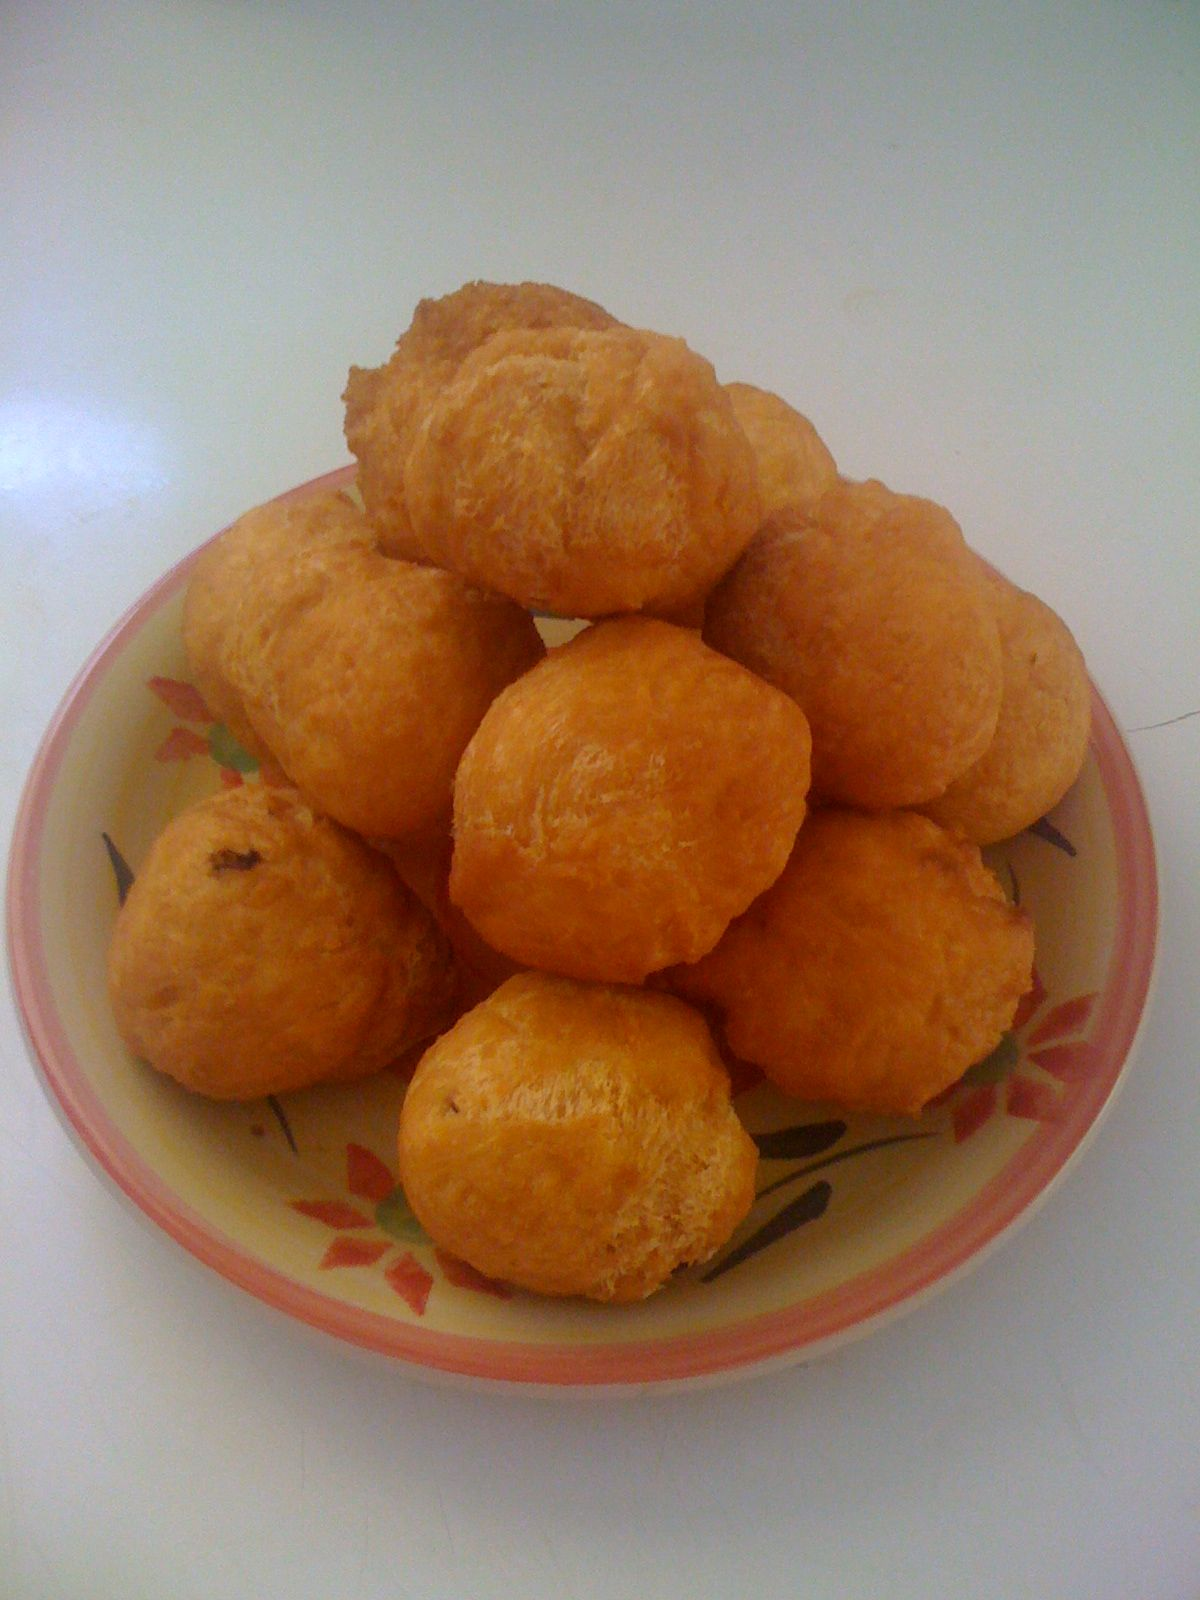 Fried Dumplings (Jamaican Style) | Cooking and Baking by ASA | Pinterest